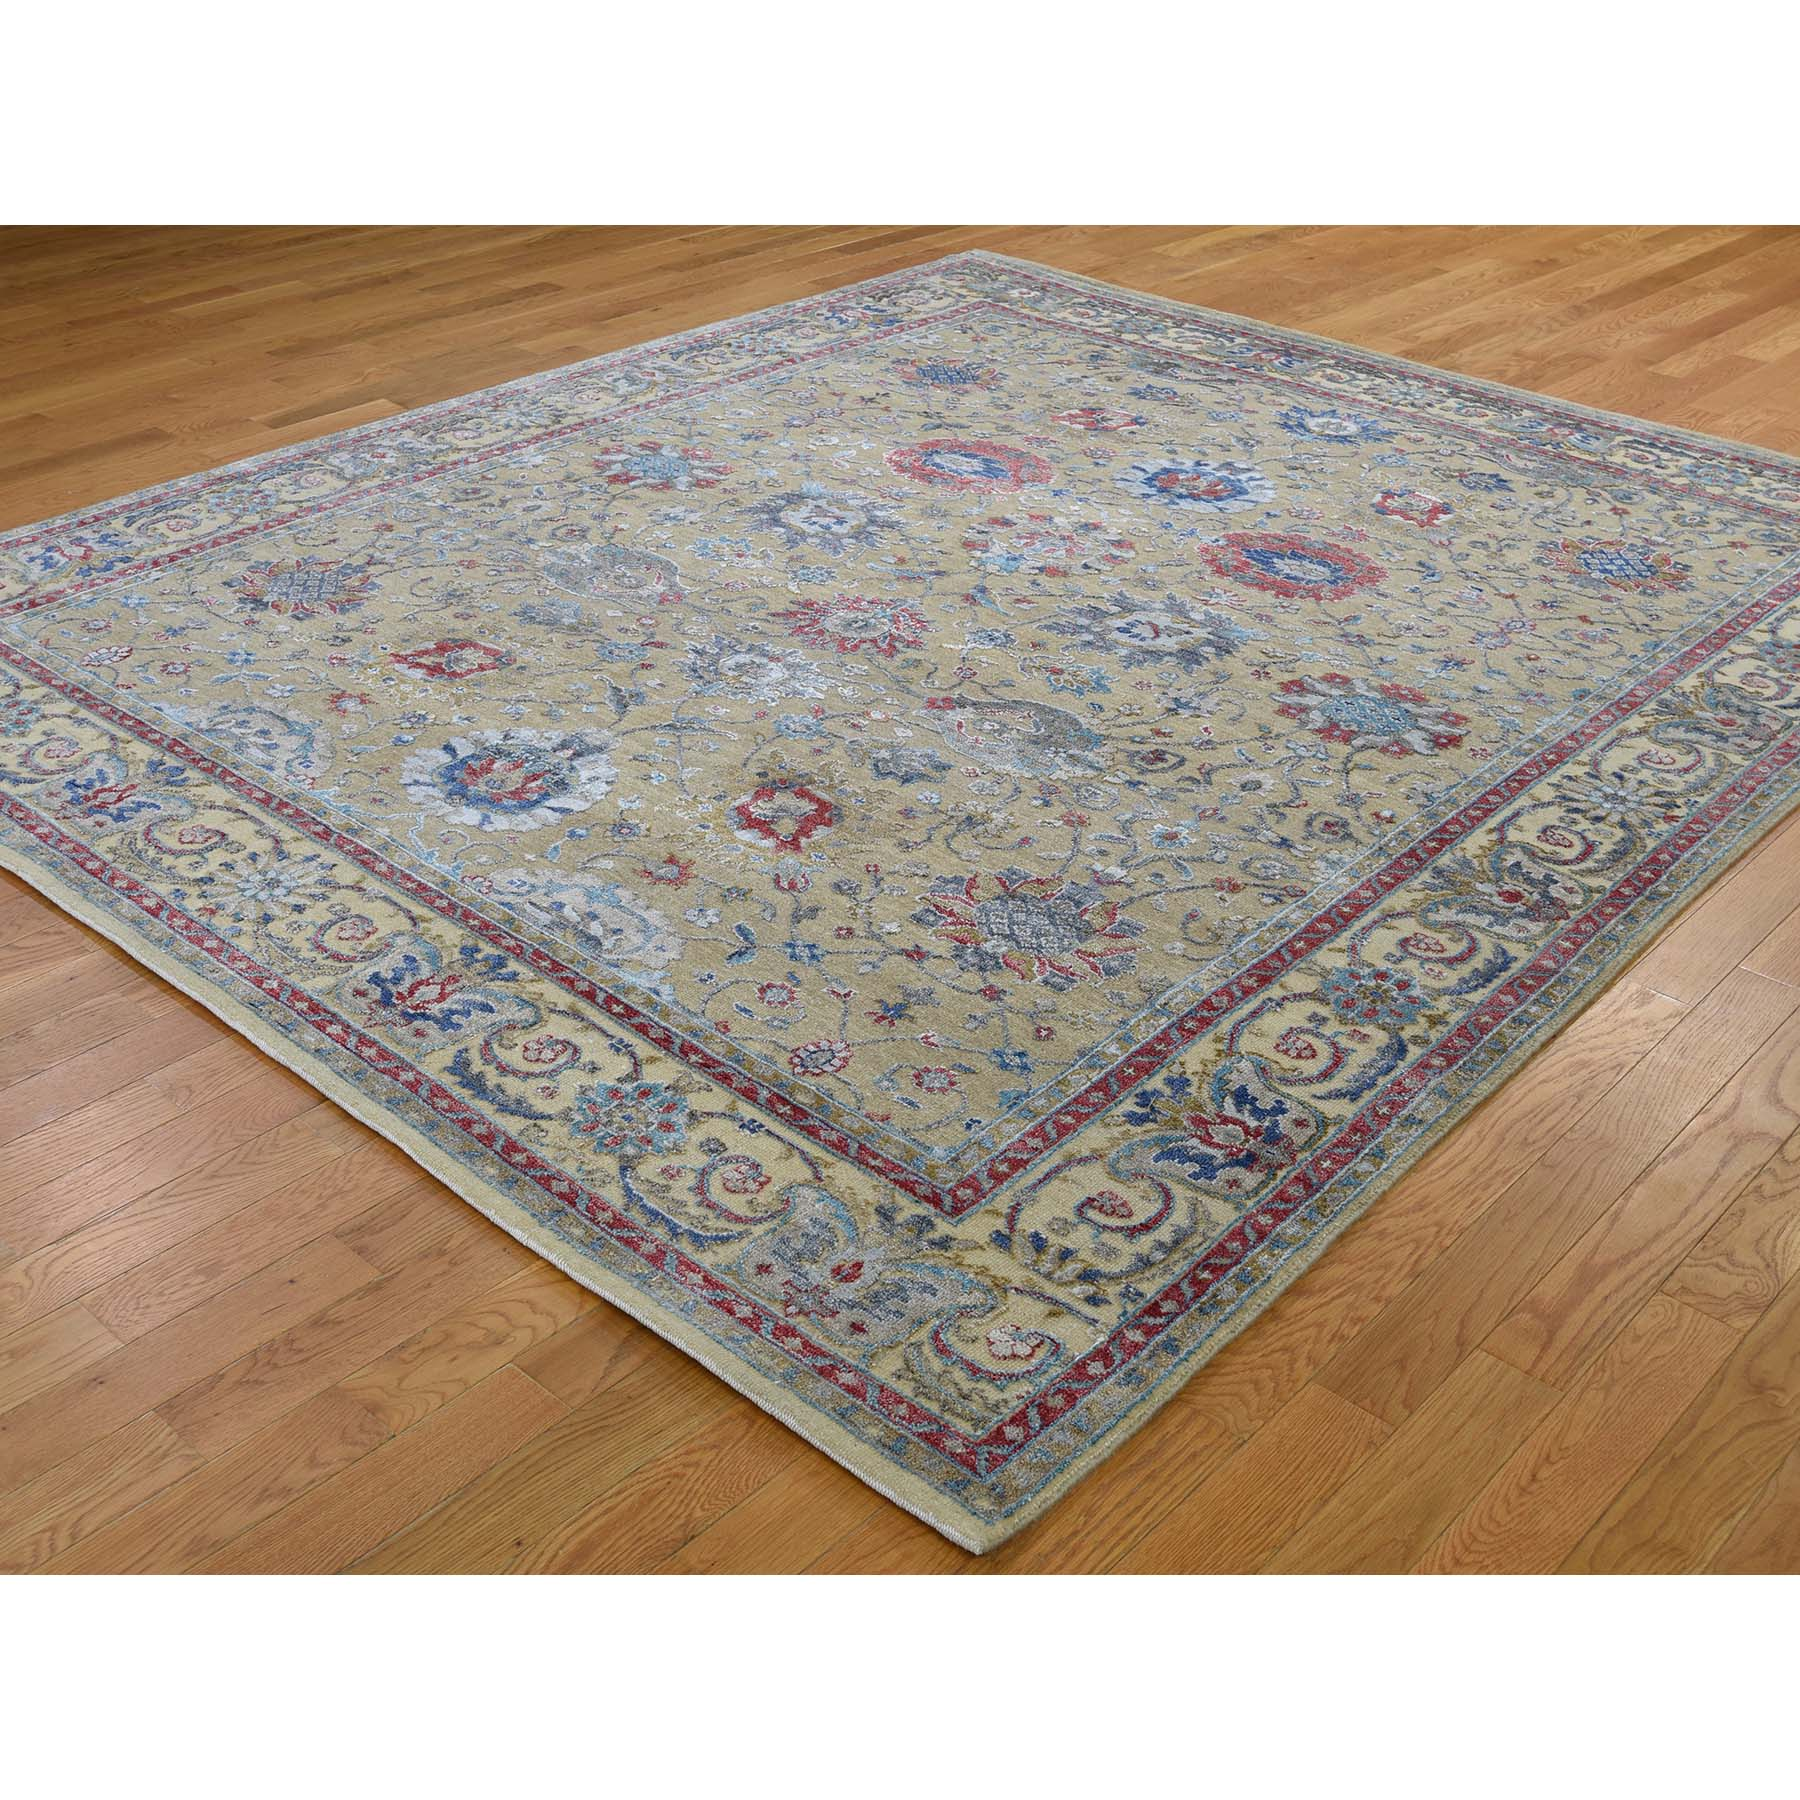 8-1 x9-7  Textured Silk With Oxidized Wool Mahal Design Hand-Knotted Oriental Rug